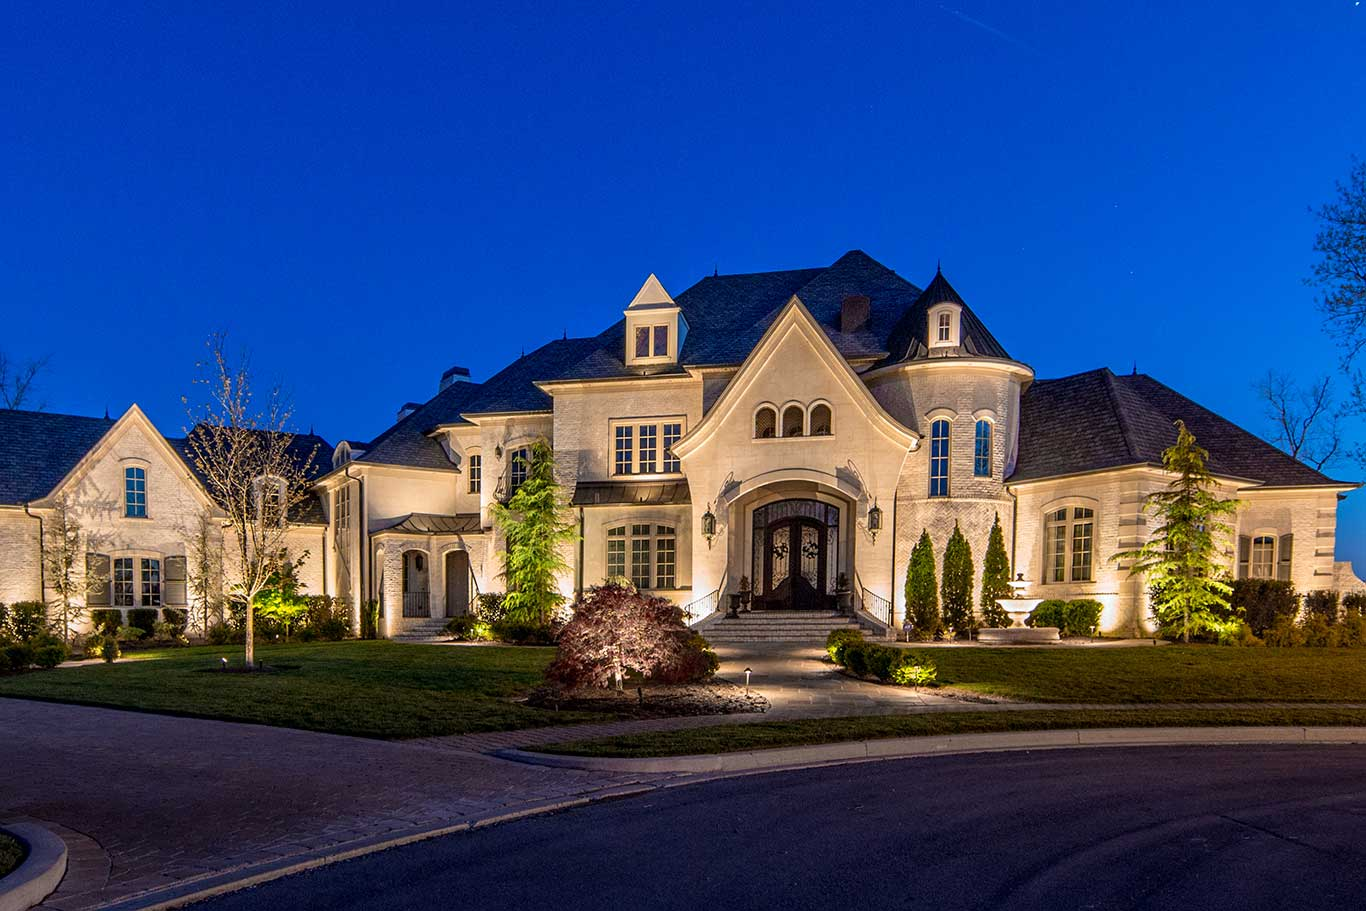 low voltage outdoor lighting on home in Gallatin, TN on Old Hickory Lake by Light Up Nashville